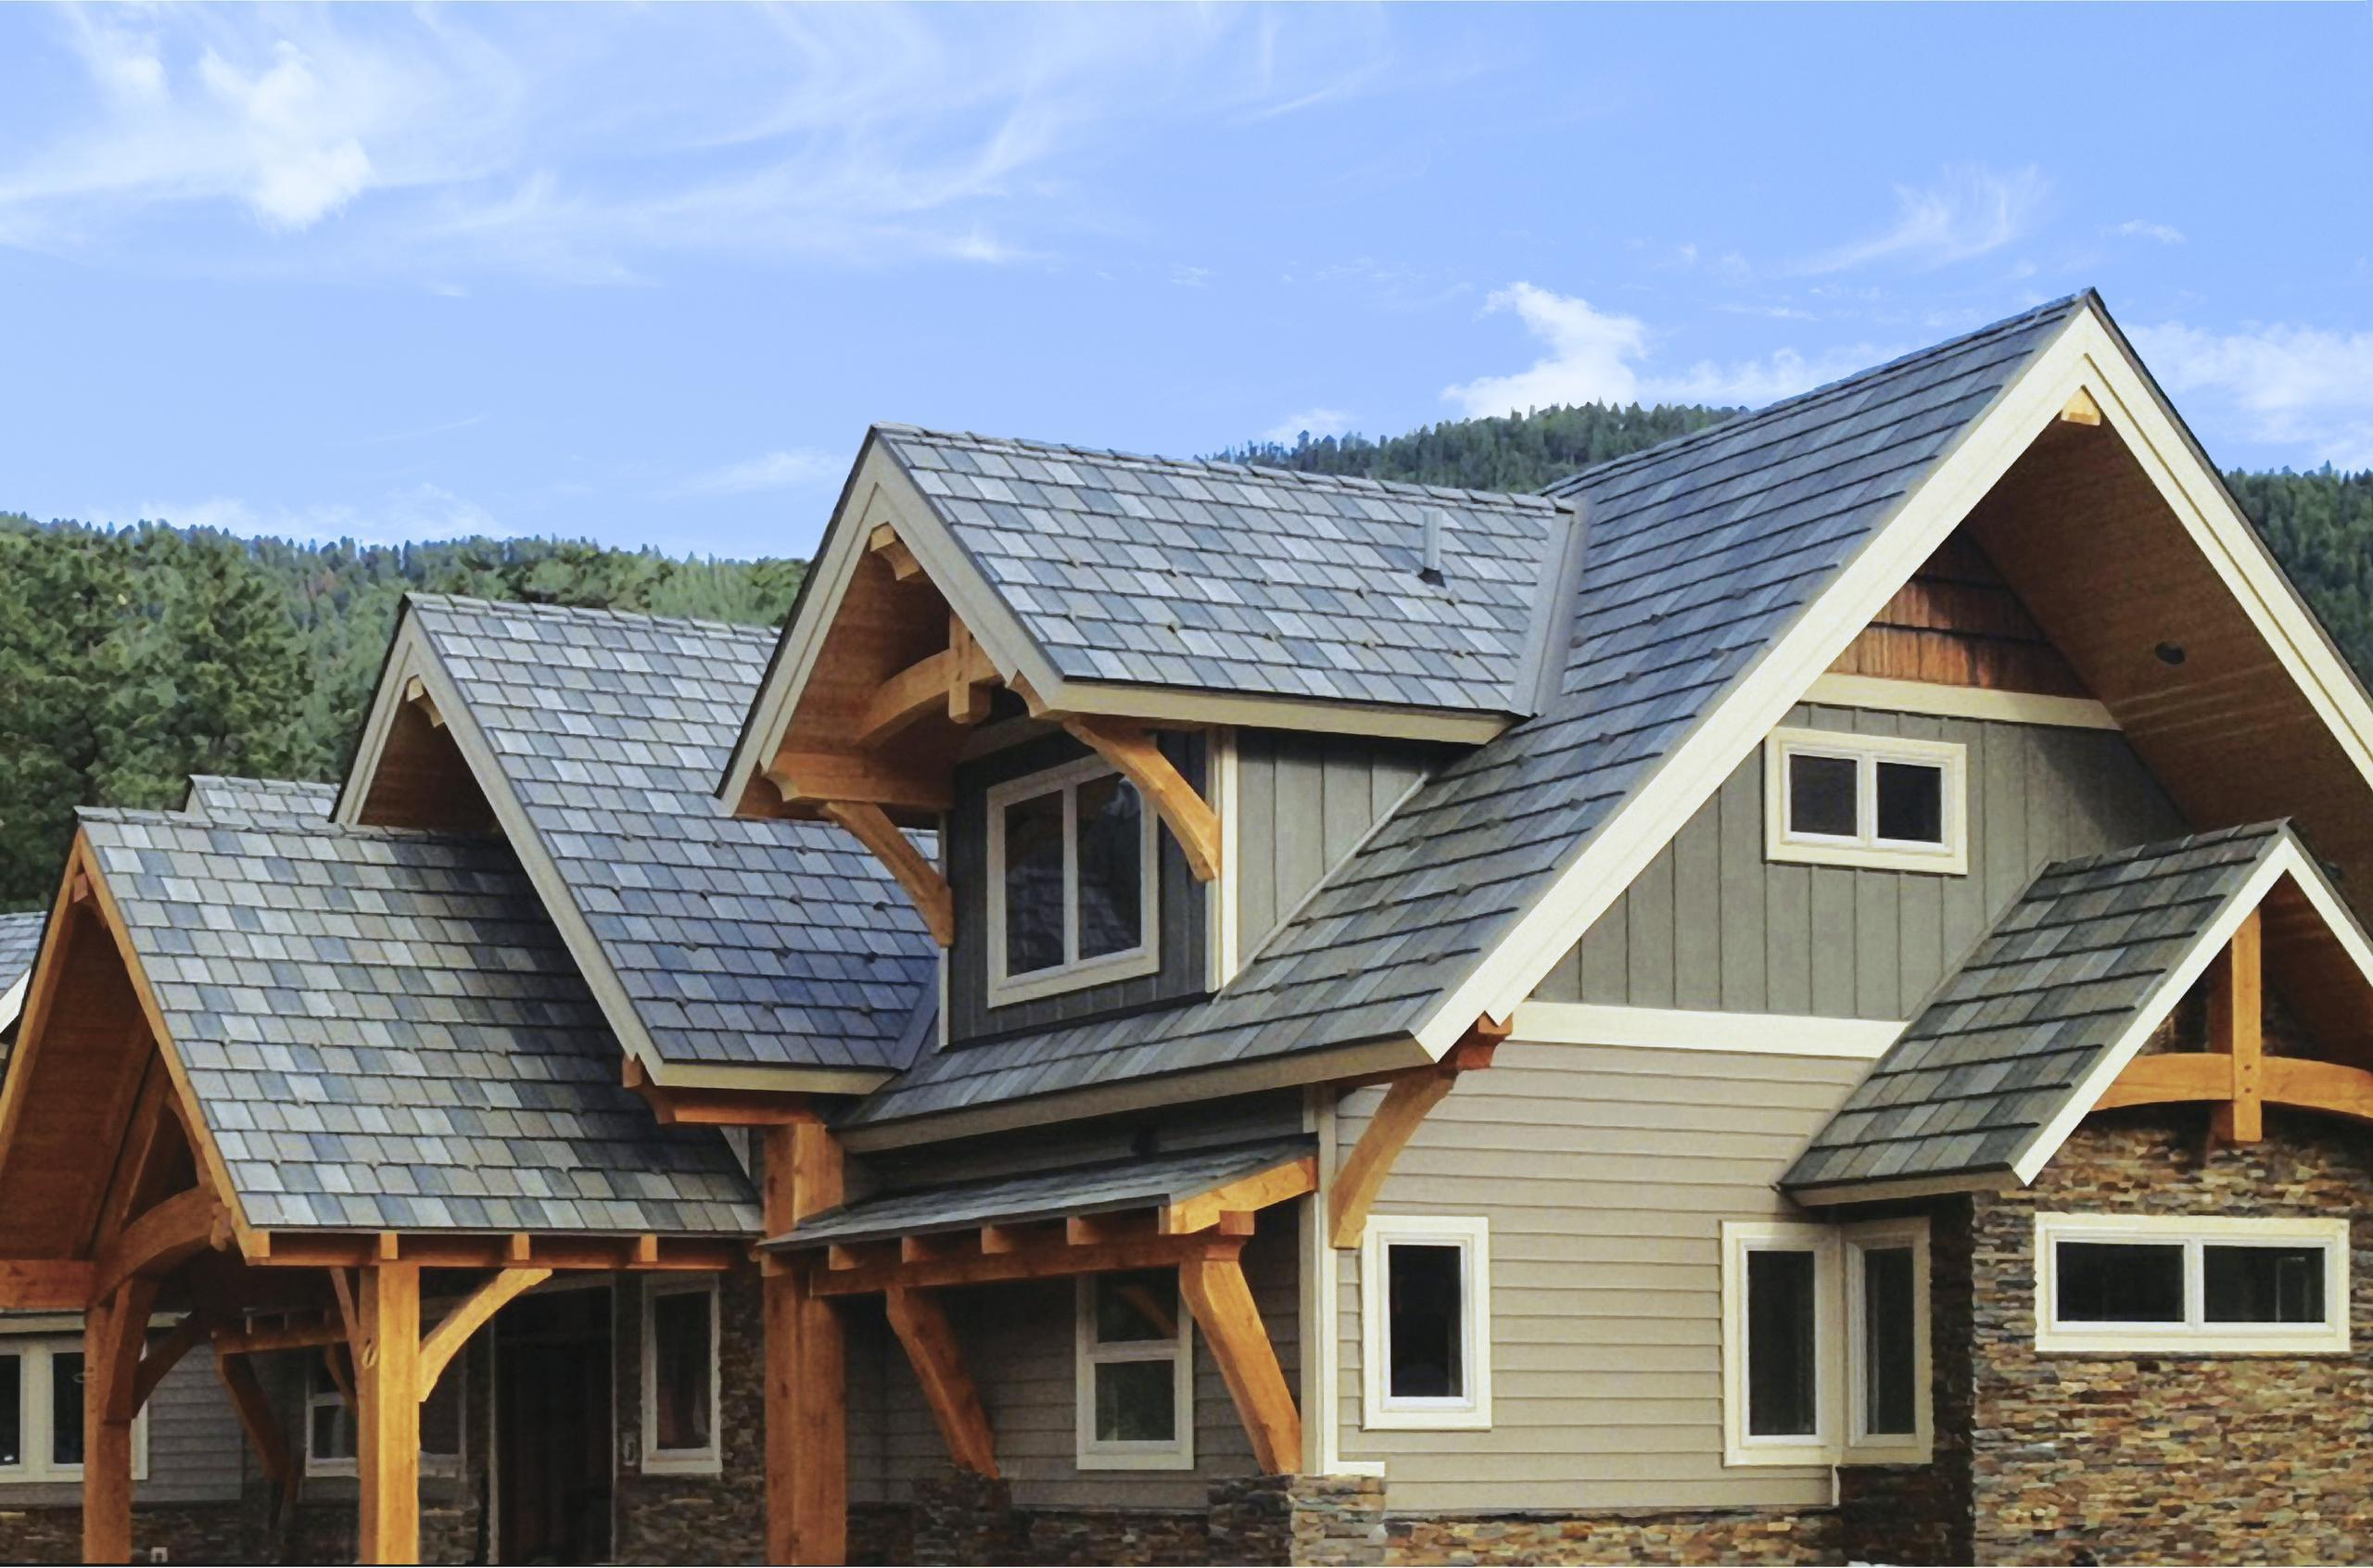 "Located in the mountains of Montana, this home showcases the beauty of EDCO's teel Arrowline Slate Roofing in T-Tone Blend, Vertical 12"" Board and Batten in T-Tone and Single 6"" Traditional Lap Siding. EDCO's color-coordinated products, from top to bottom, offer homeowners and professionals versatility when it comes to designing a stunning home."